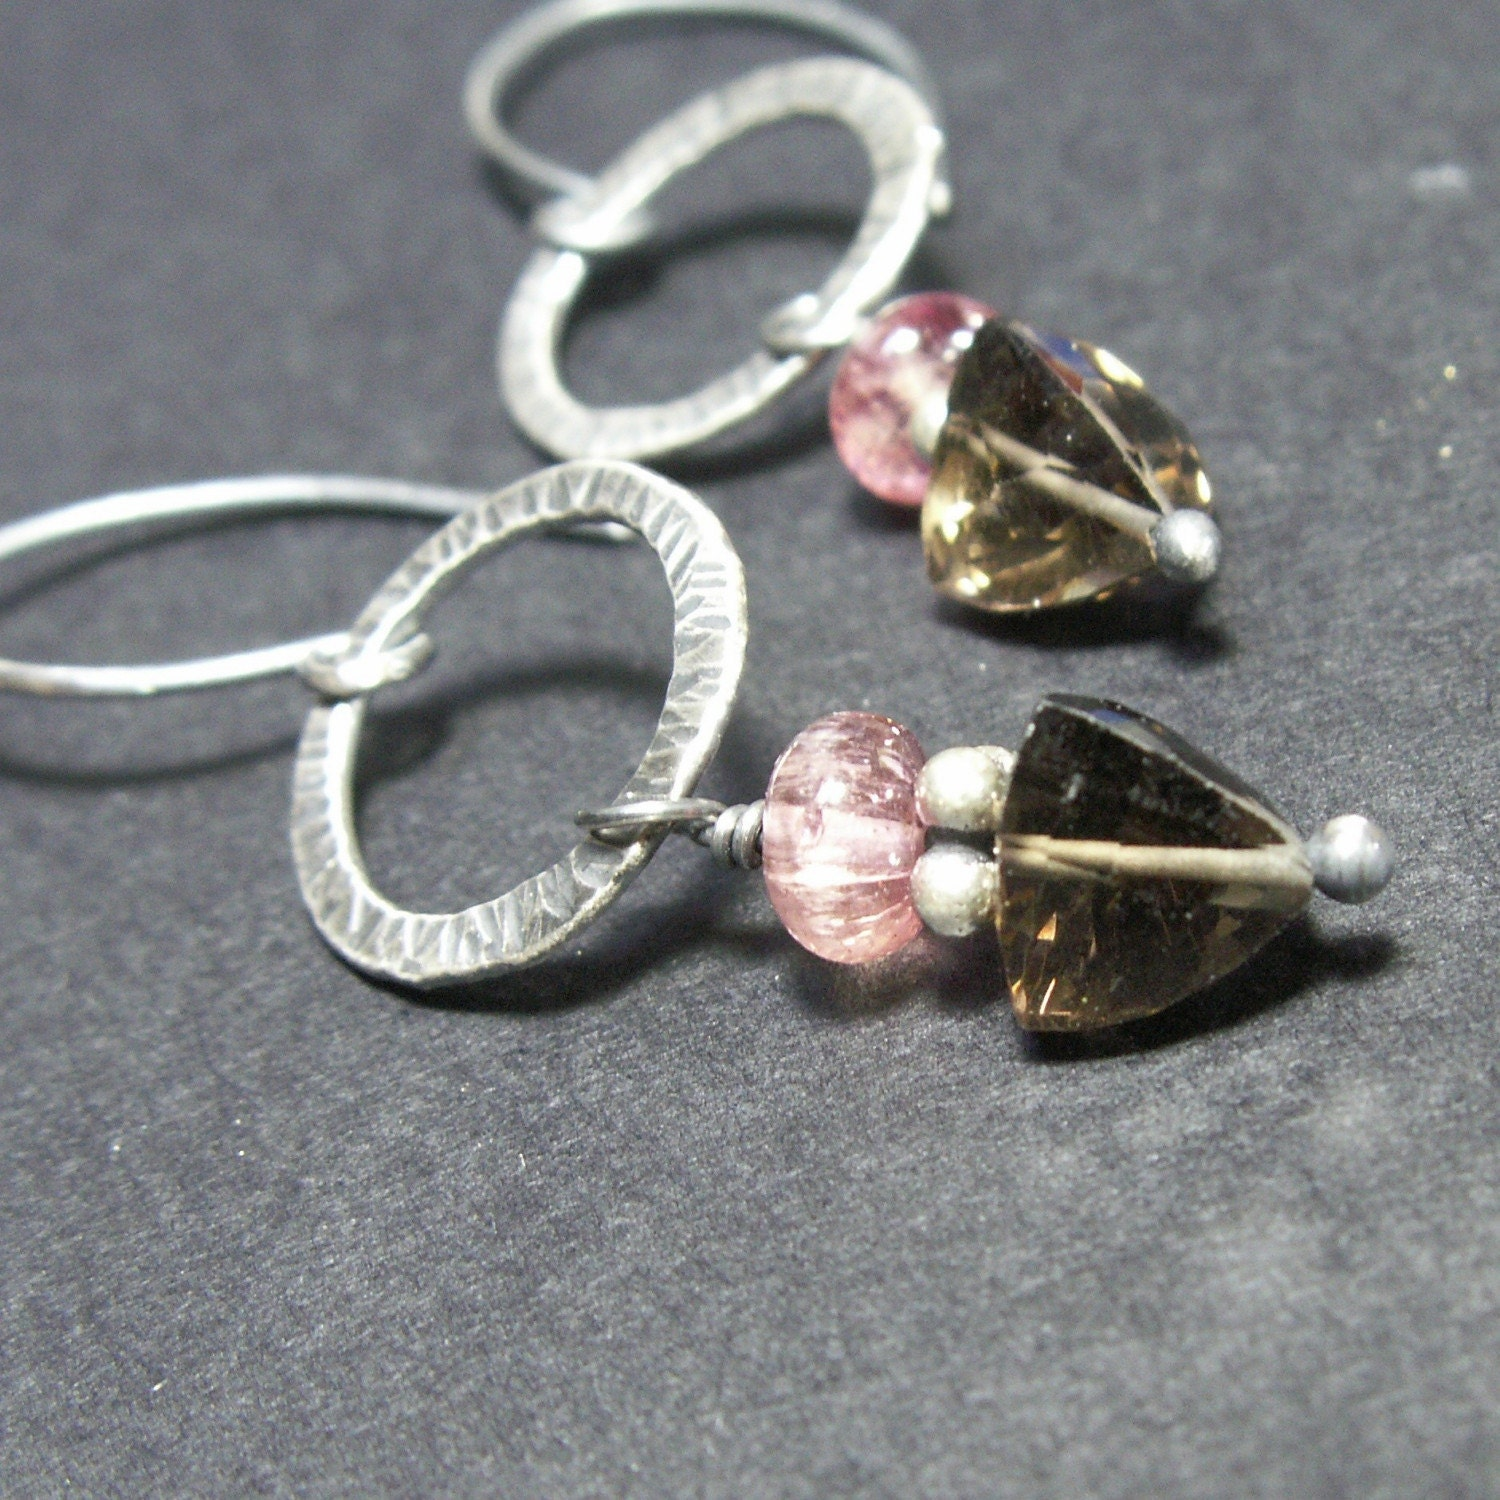 handmade jewelry earrings smoky quartz pink tourmaline sterling silver oxidized